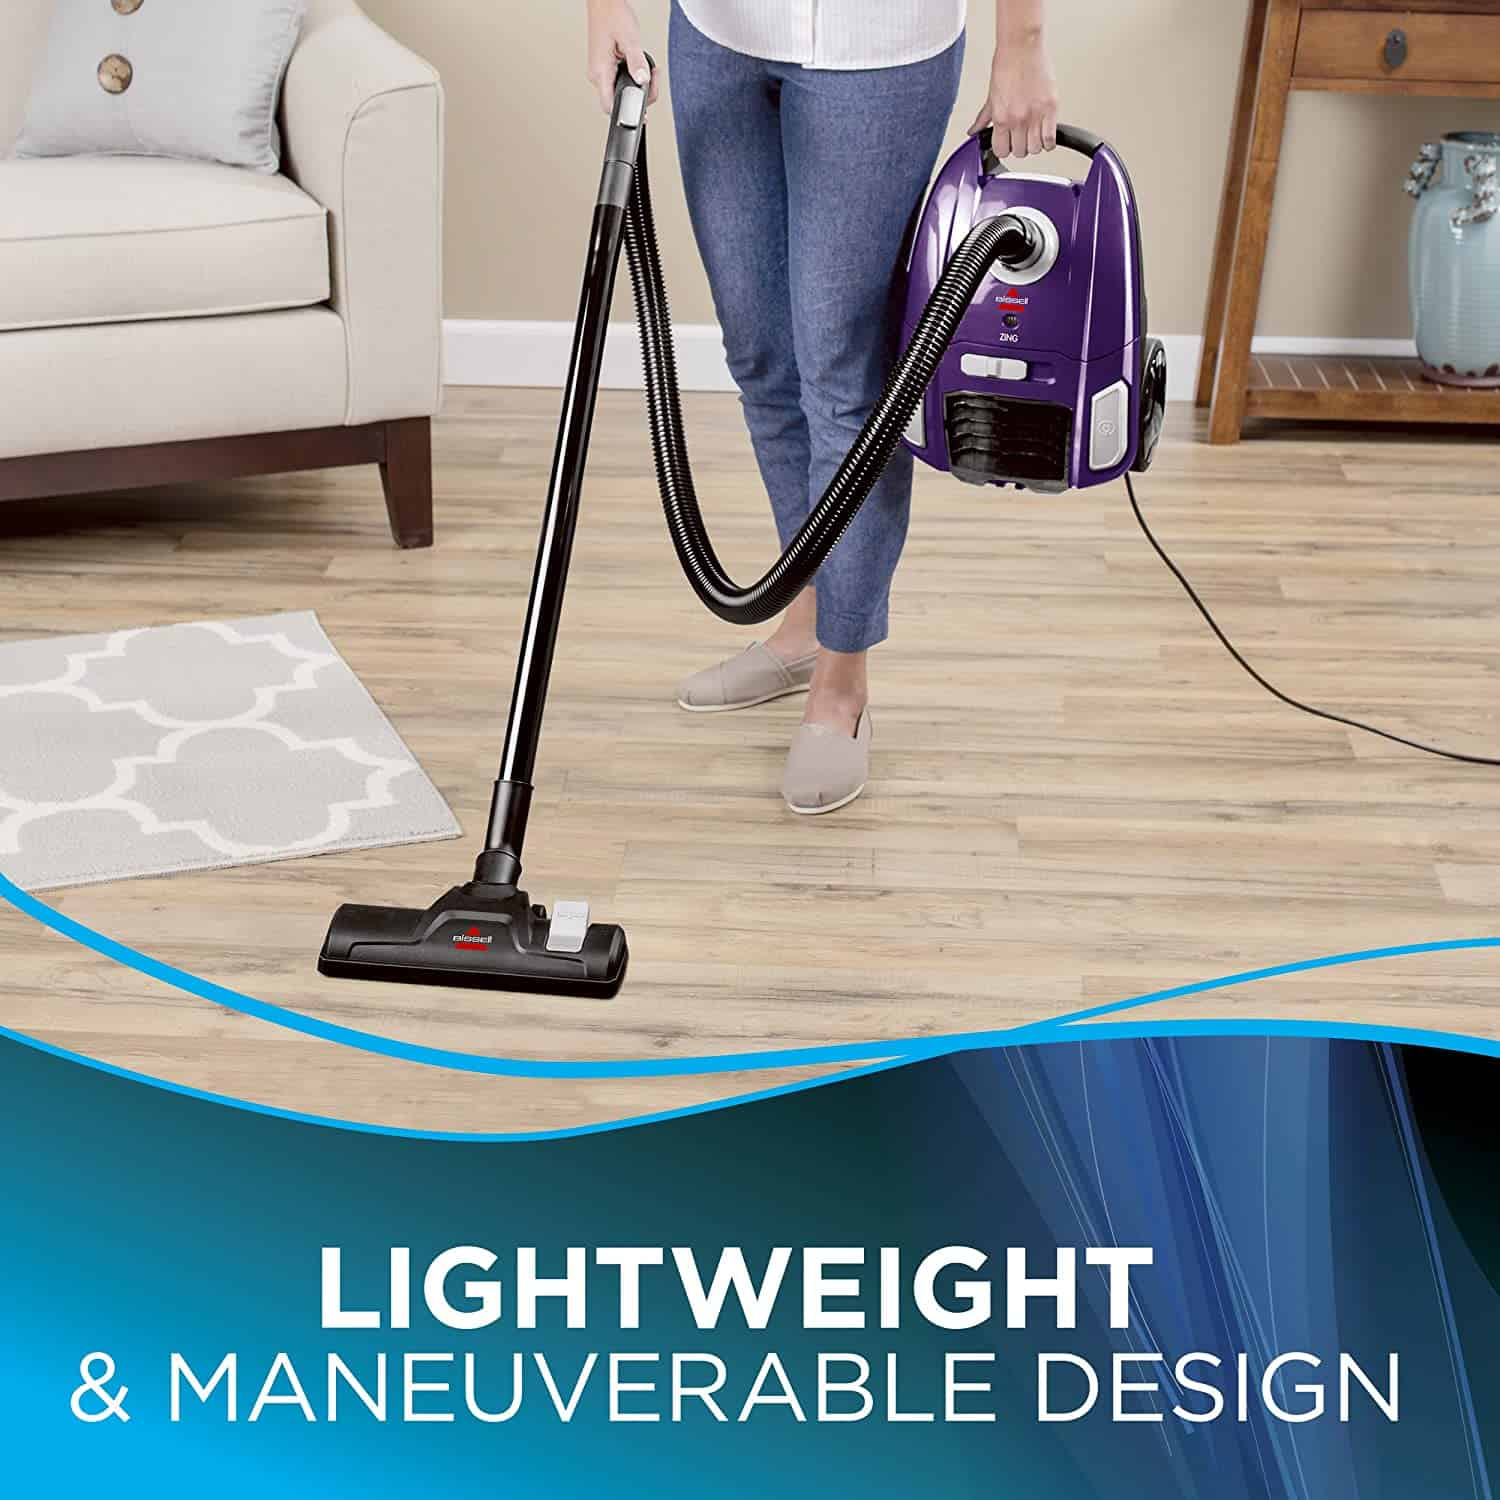 Best Budget Vacuum Cleaner: BISSELL Zing Lightweight Bagged Canister Vacuum